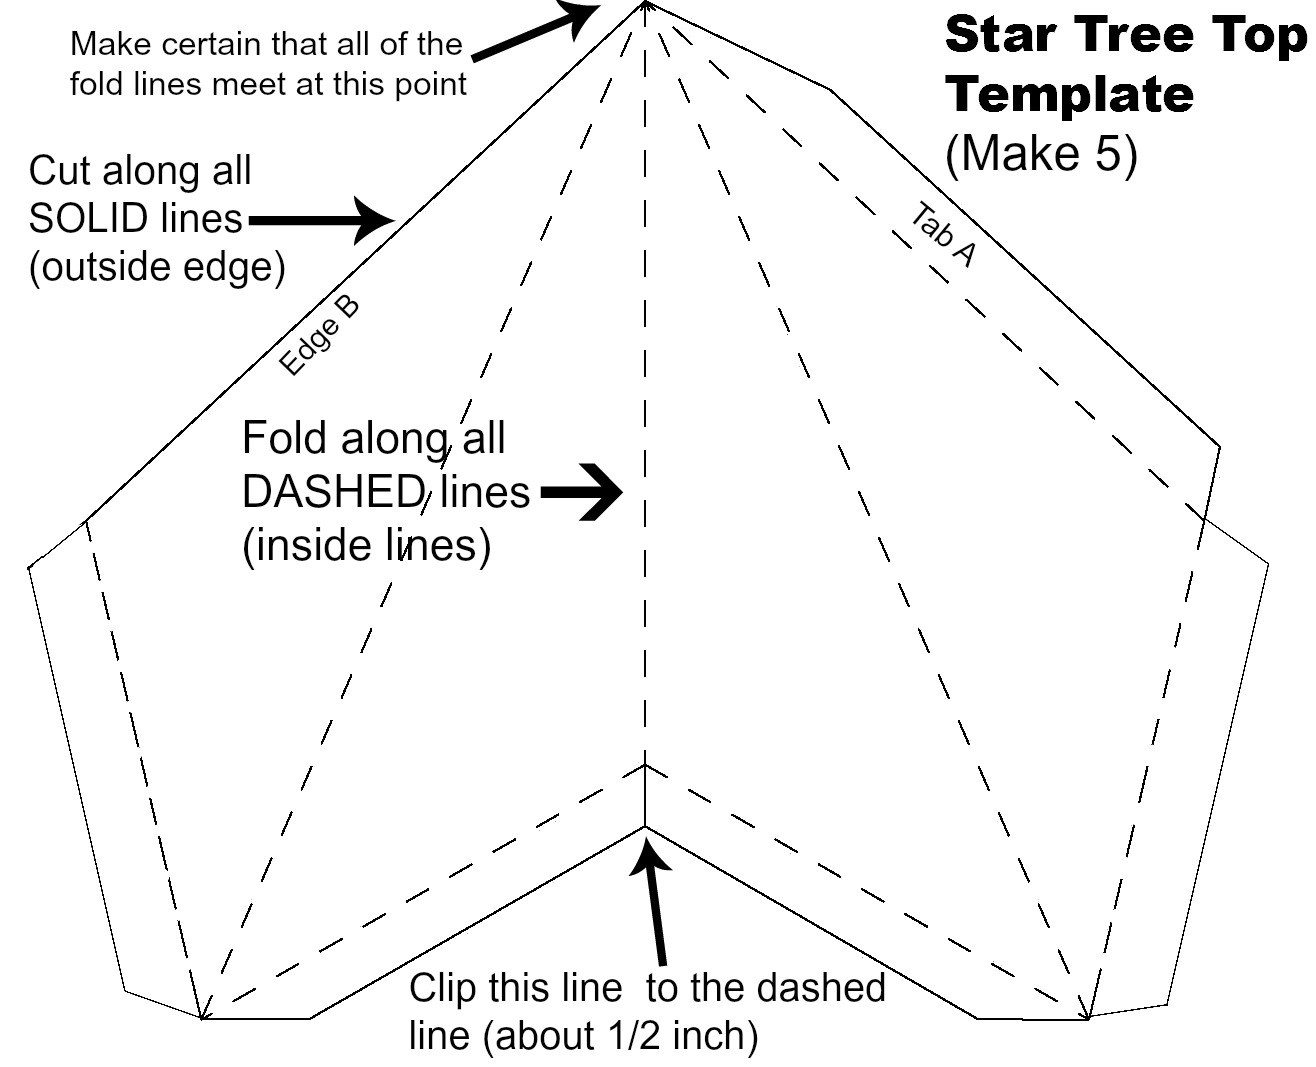 Serendipity Refined Blog: Star Tree Top and Werner, The Ladder